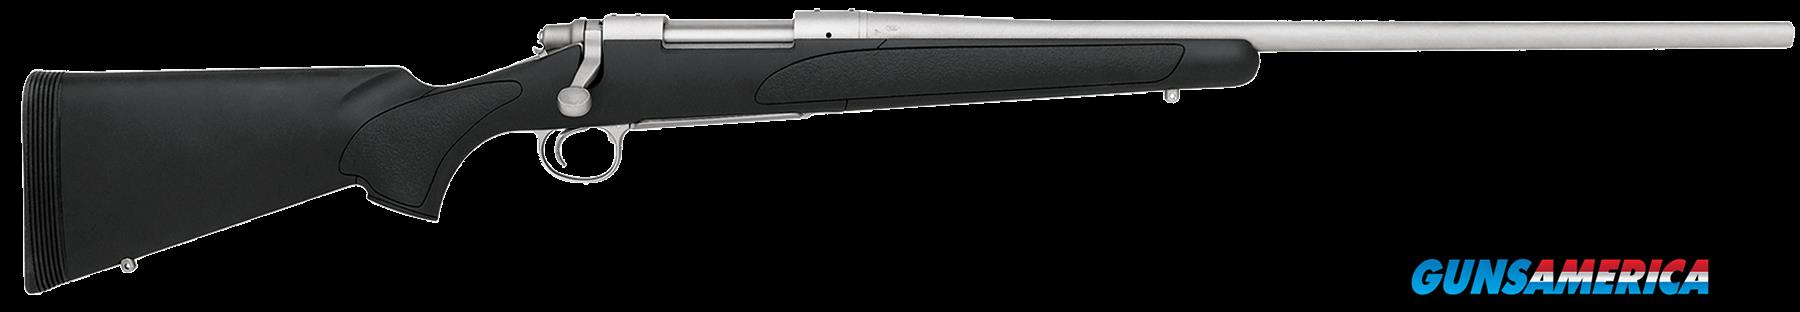 "Remington Firearms 84300 700 SPS Stainless Bolt 7mm RUM 26"" 3+1 Synthetic Black Stk Stainless Steel  Guns > Rifles > R Misc Rifles"